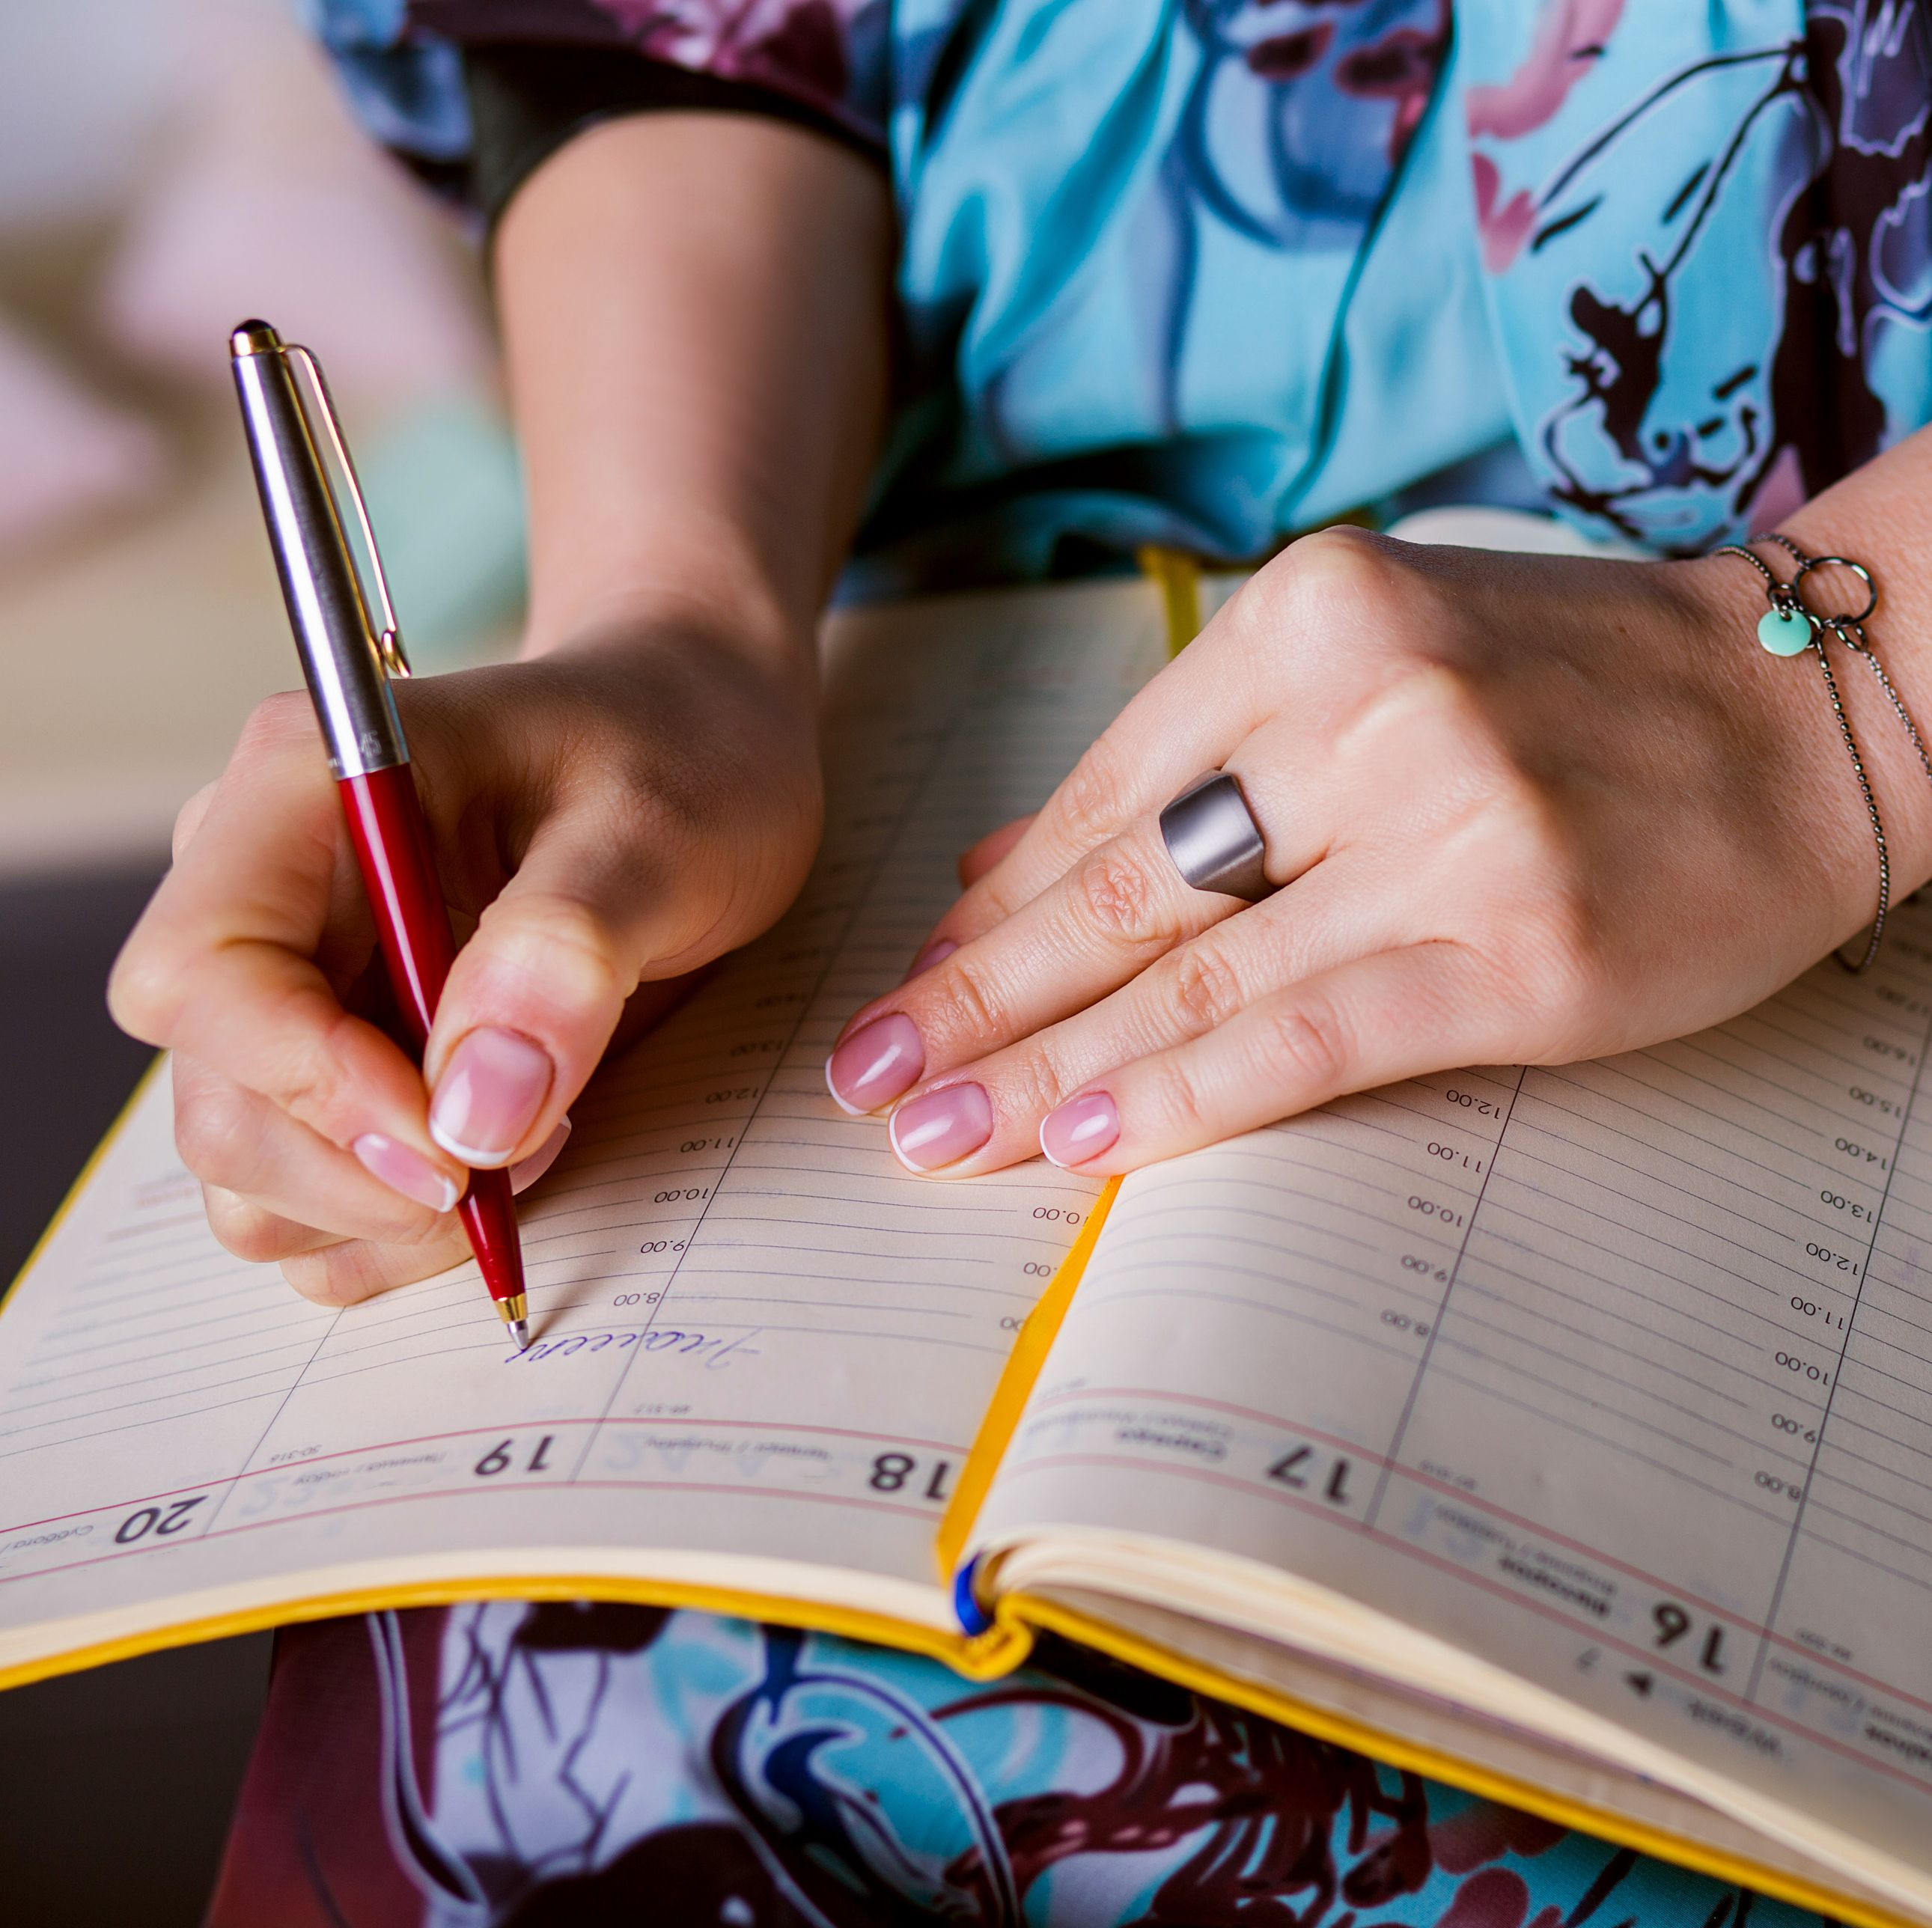 respectable woman is writing notes and planning schedule.